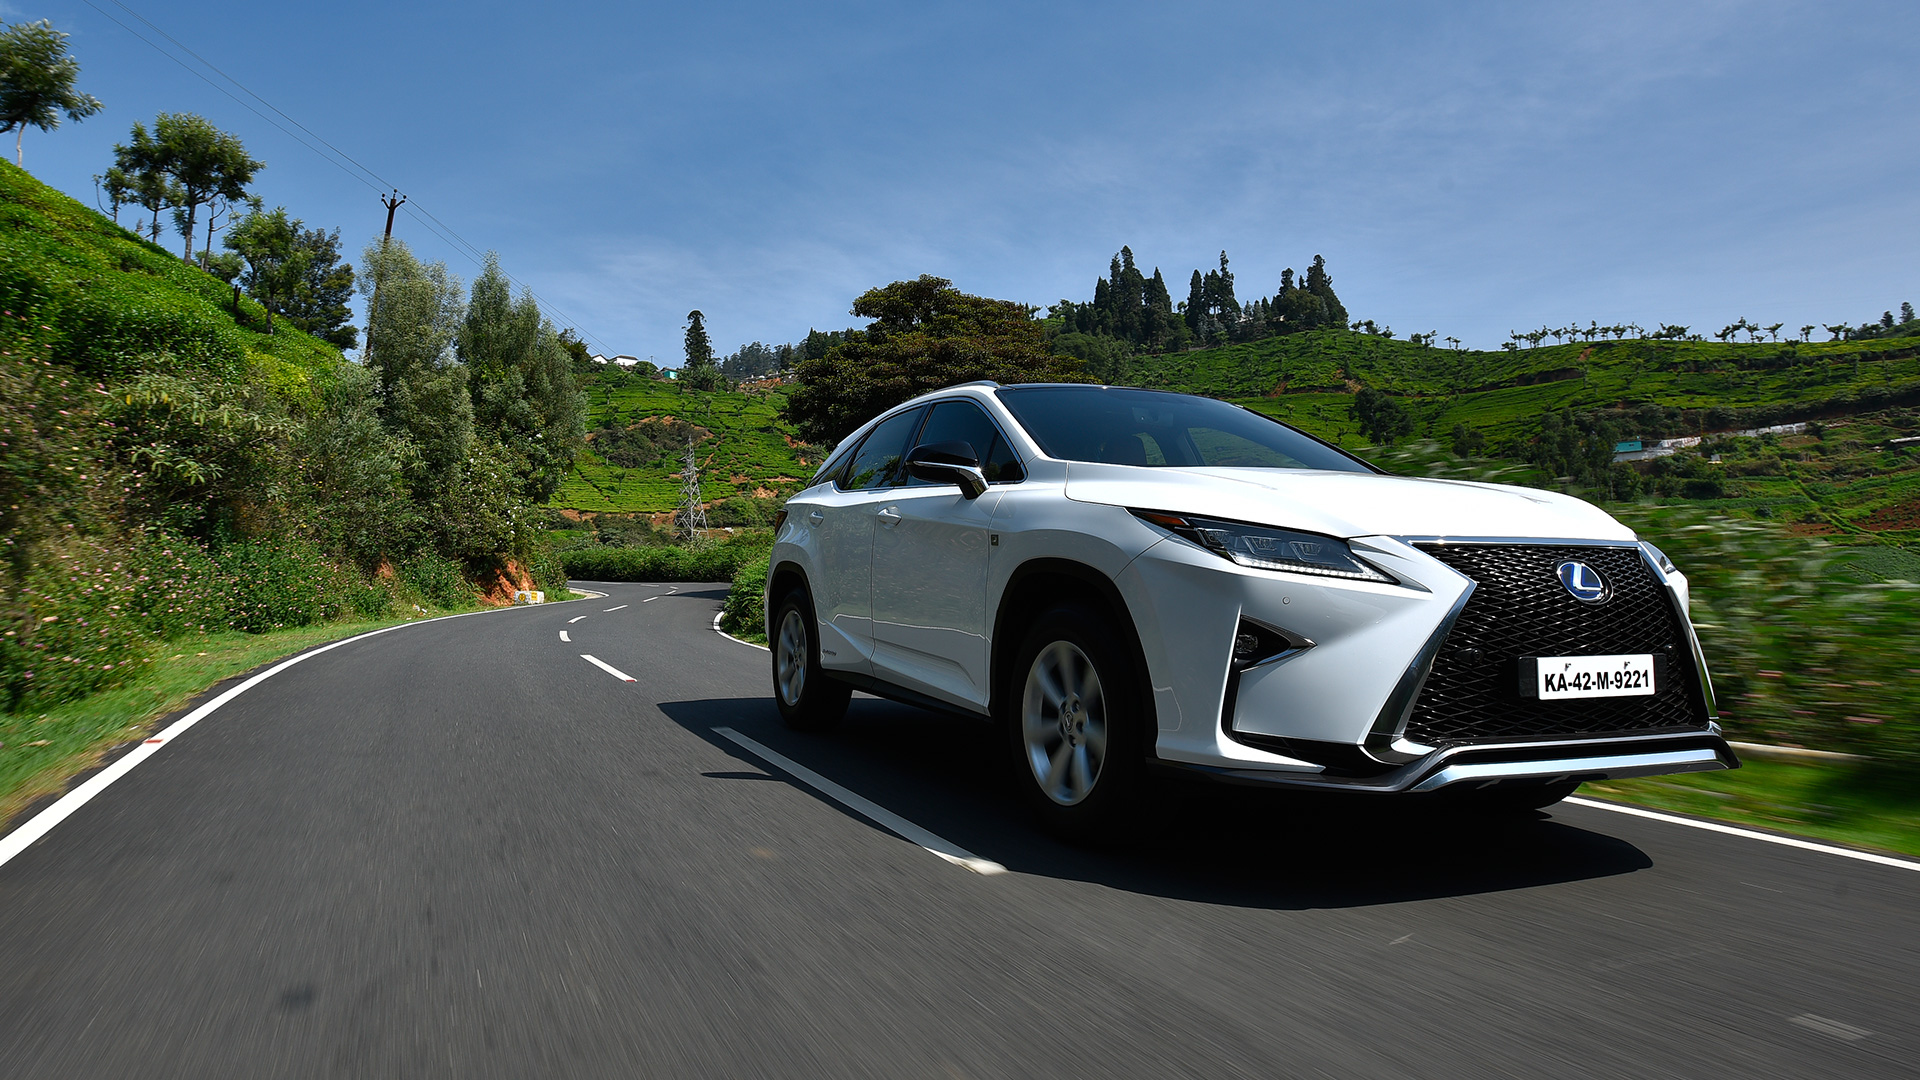 lexus rx 450h 2017 price mileage reviews specification gallery overdrive. Black Bedroom Furniture Sets. Home Design Ideas